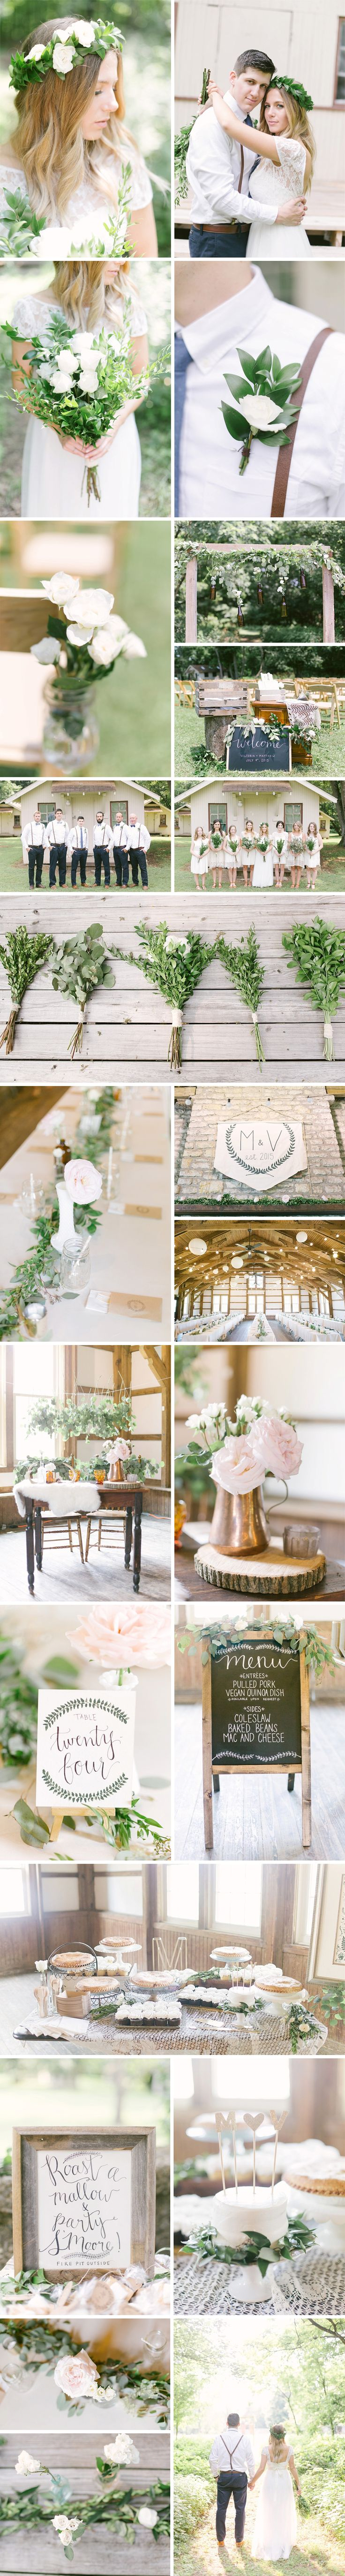 Boho Woodland DIY Wedding with wholesale flowers from FiftyFlowers.com. - Event Planning & Styling: Events Held Dear | Photography: Leigh Elizabeth Photography